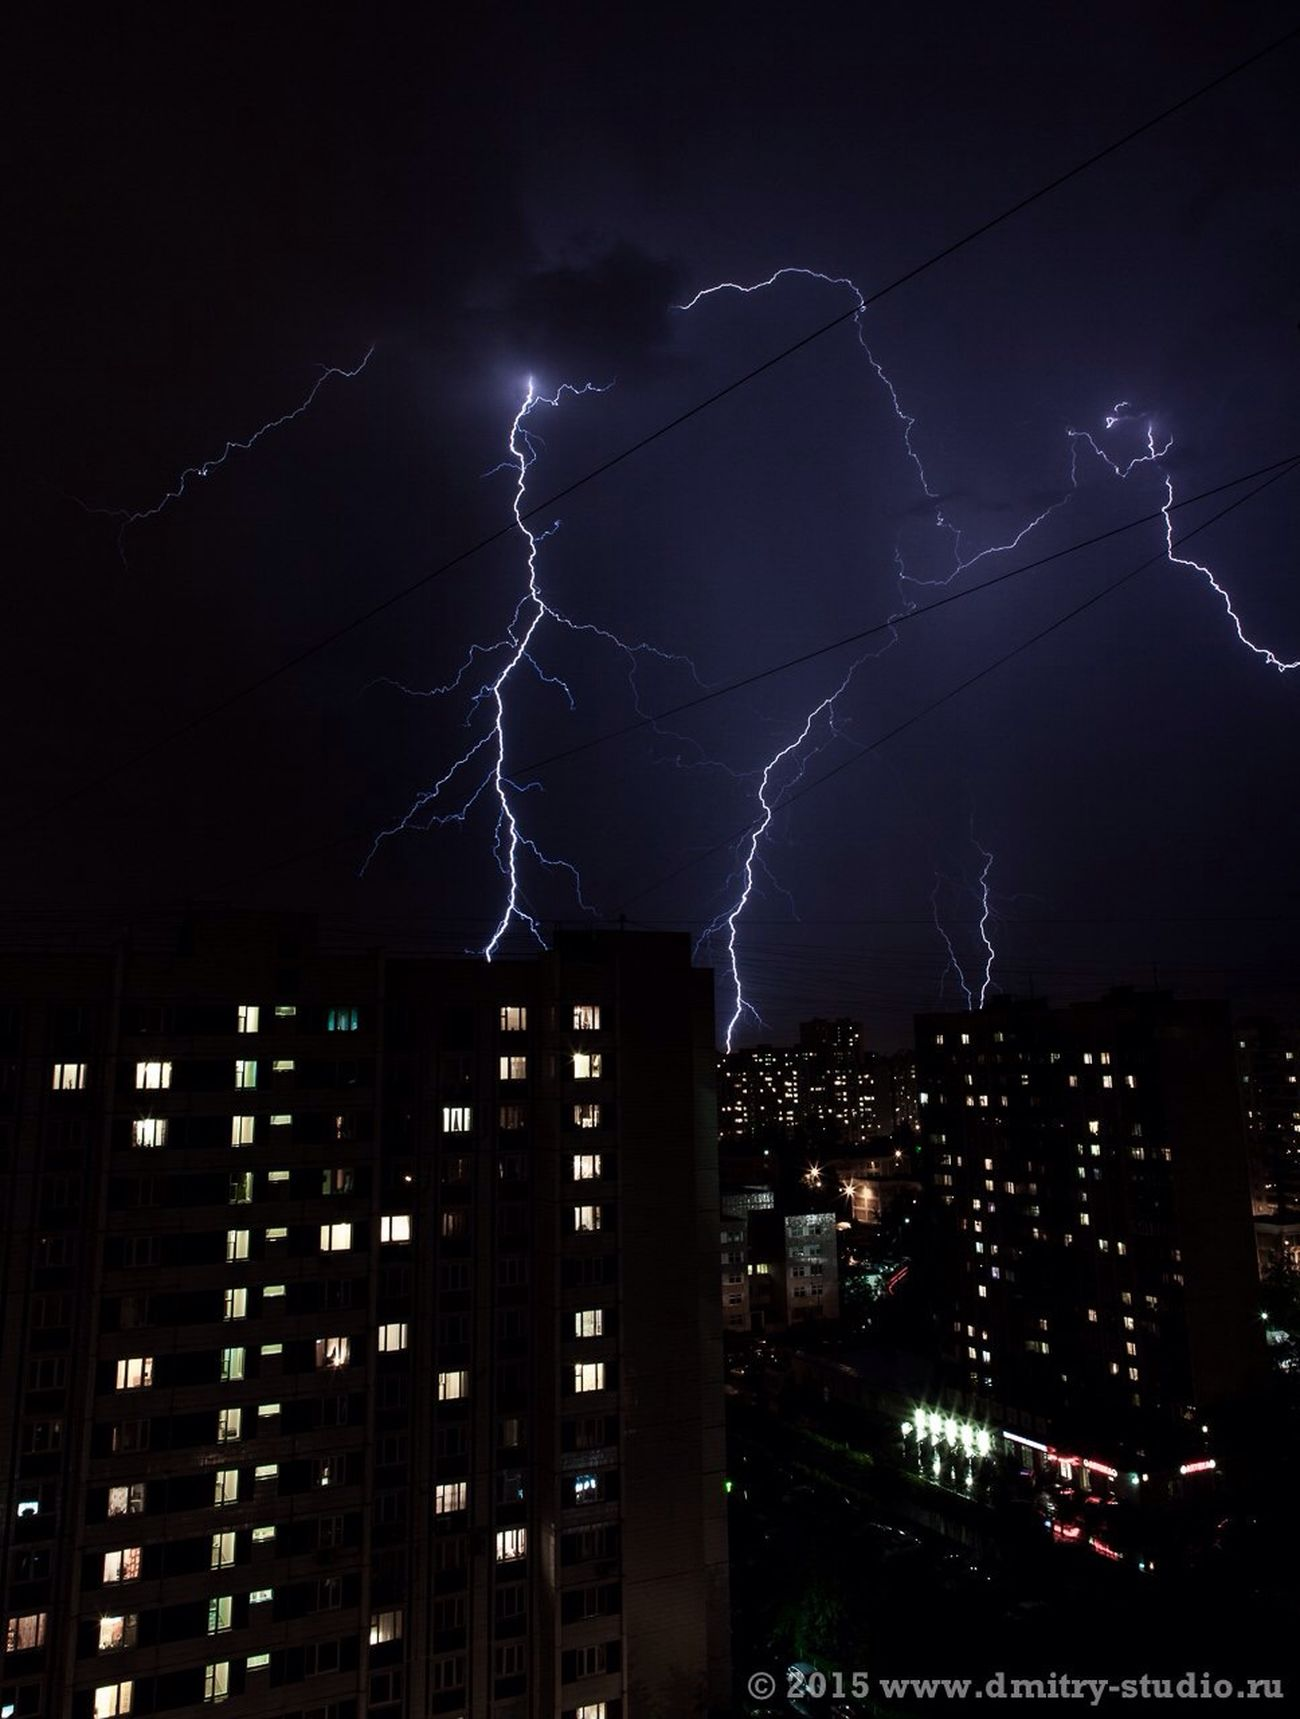 Lighting Night Flash Thunderstorm гроза Молния